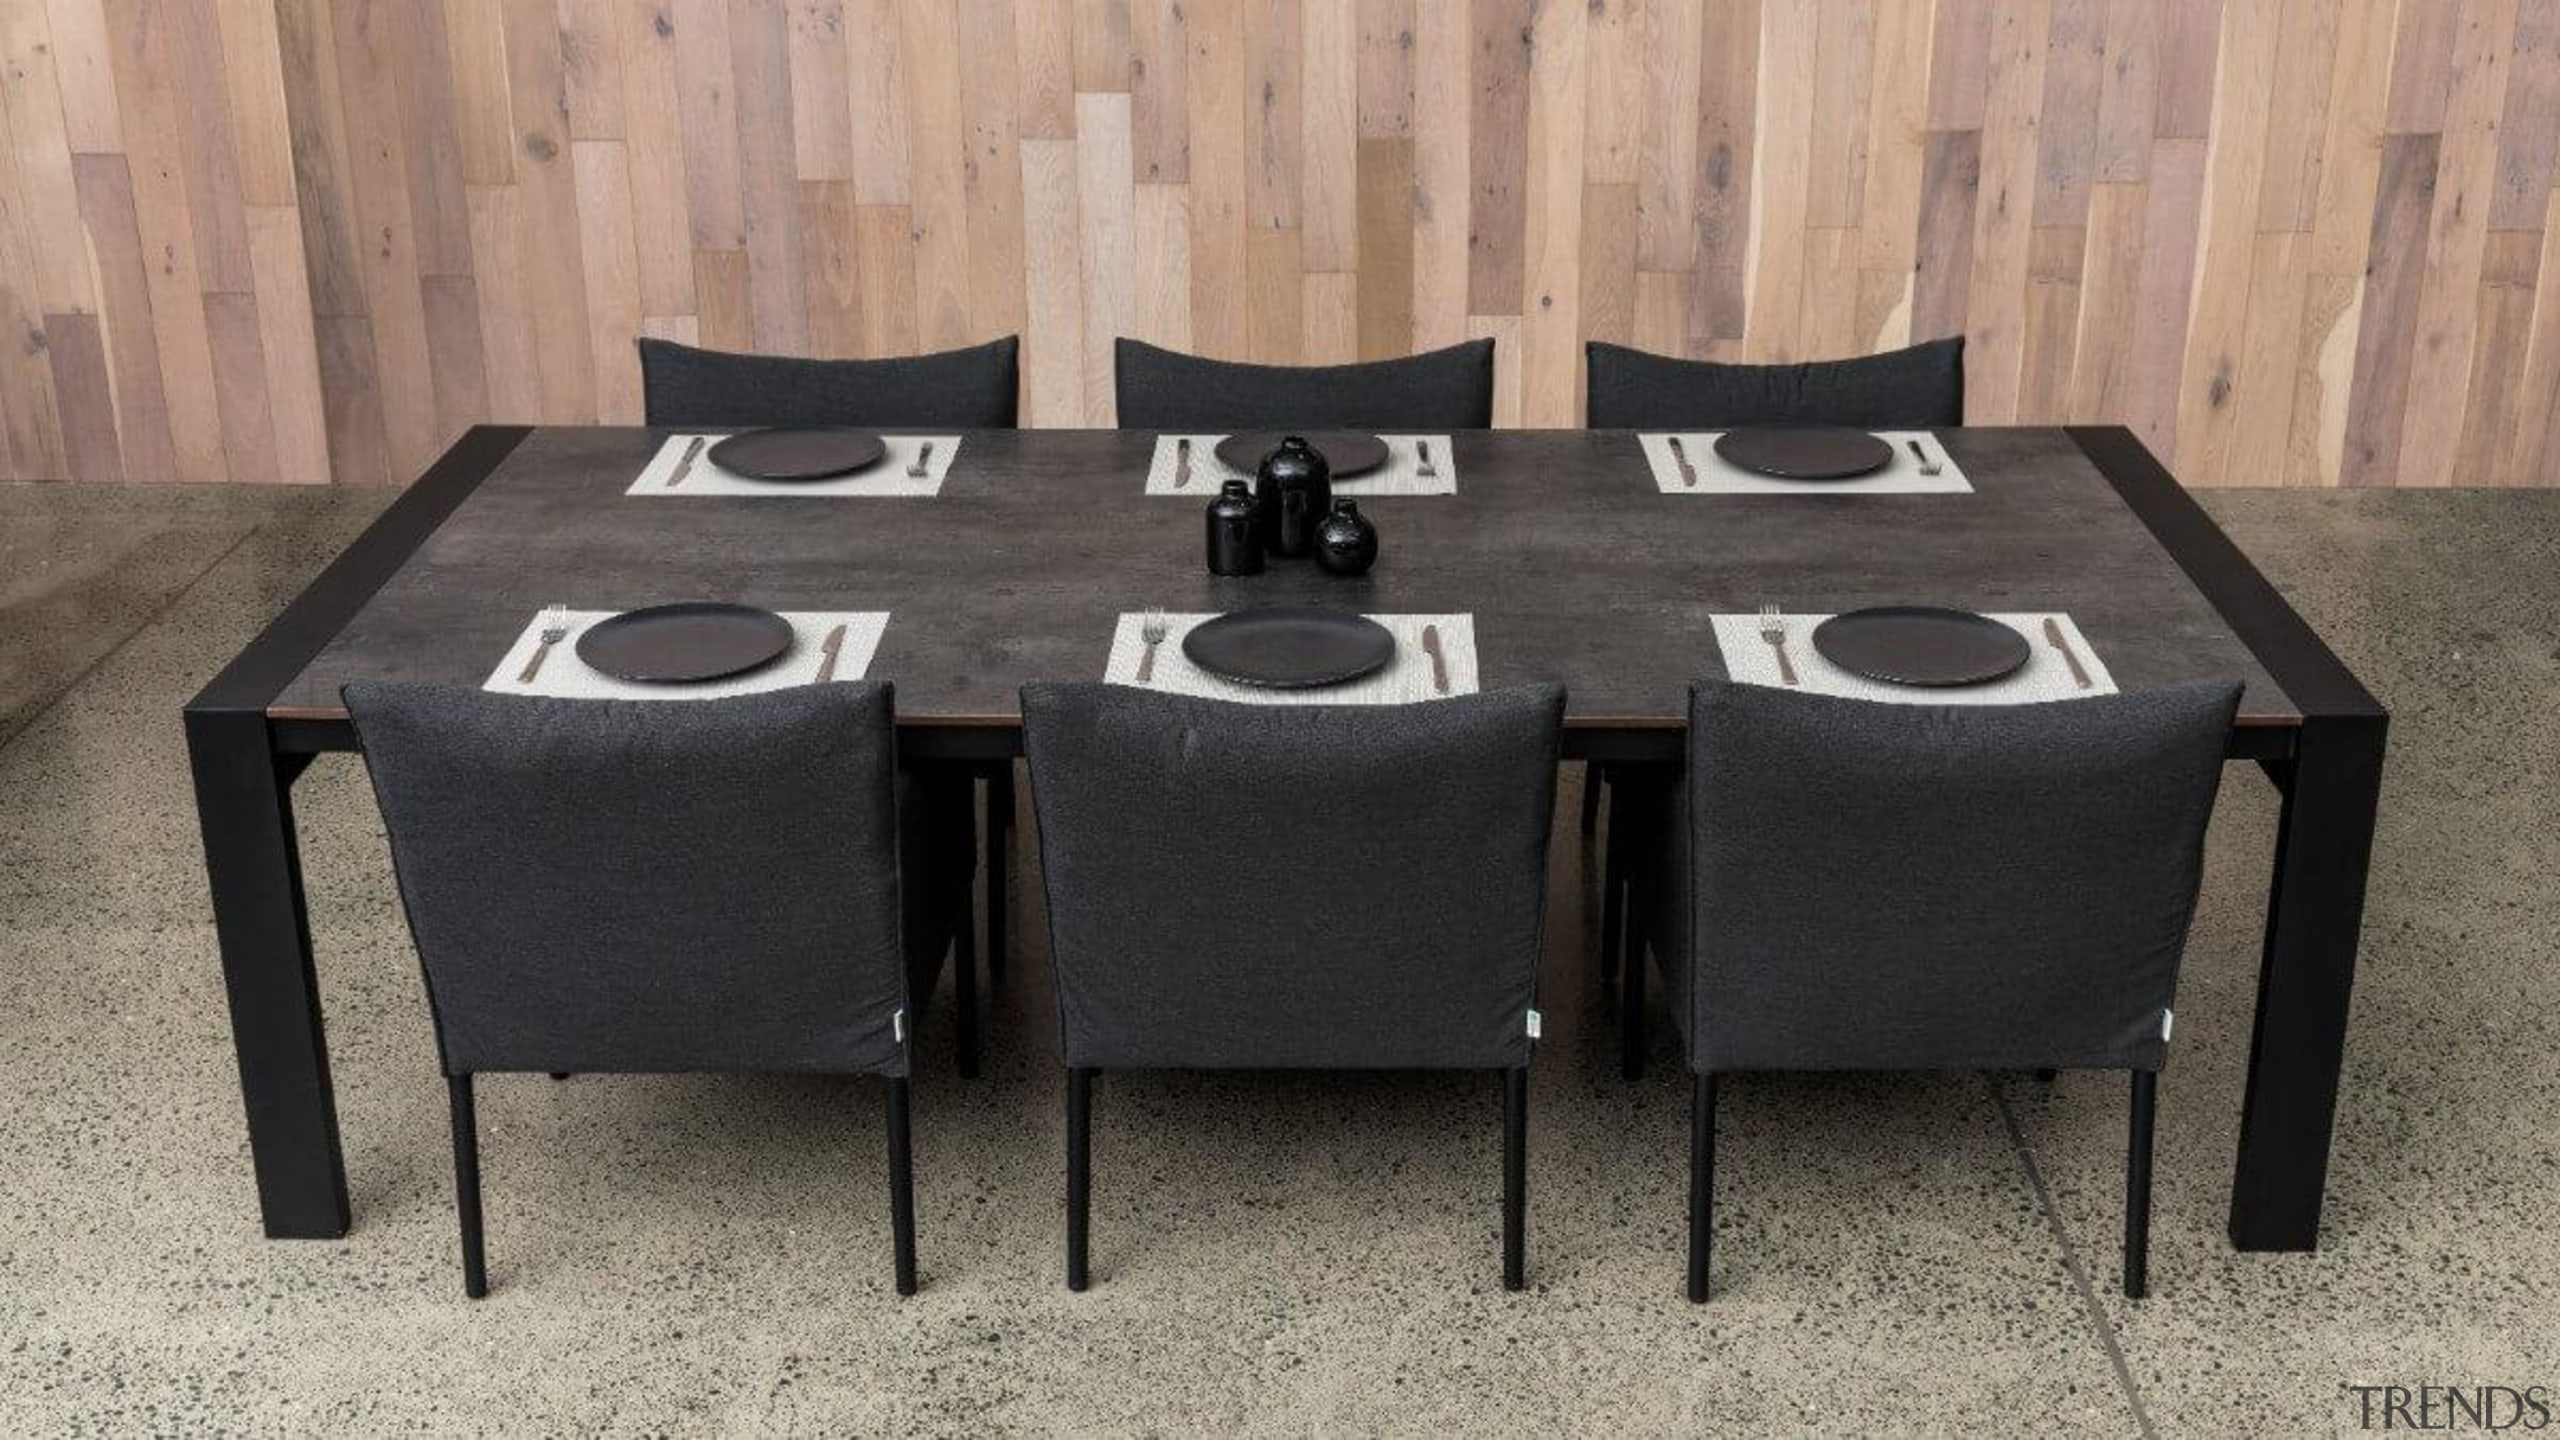 The Marlborough table incorporates an HPL top chair, coffee table, furniture, kitchen & dining room table, outdoor table, rectangle, room, table, tablecloth, textile, gray, black